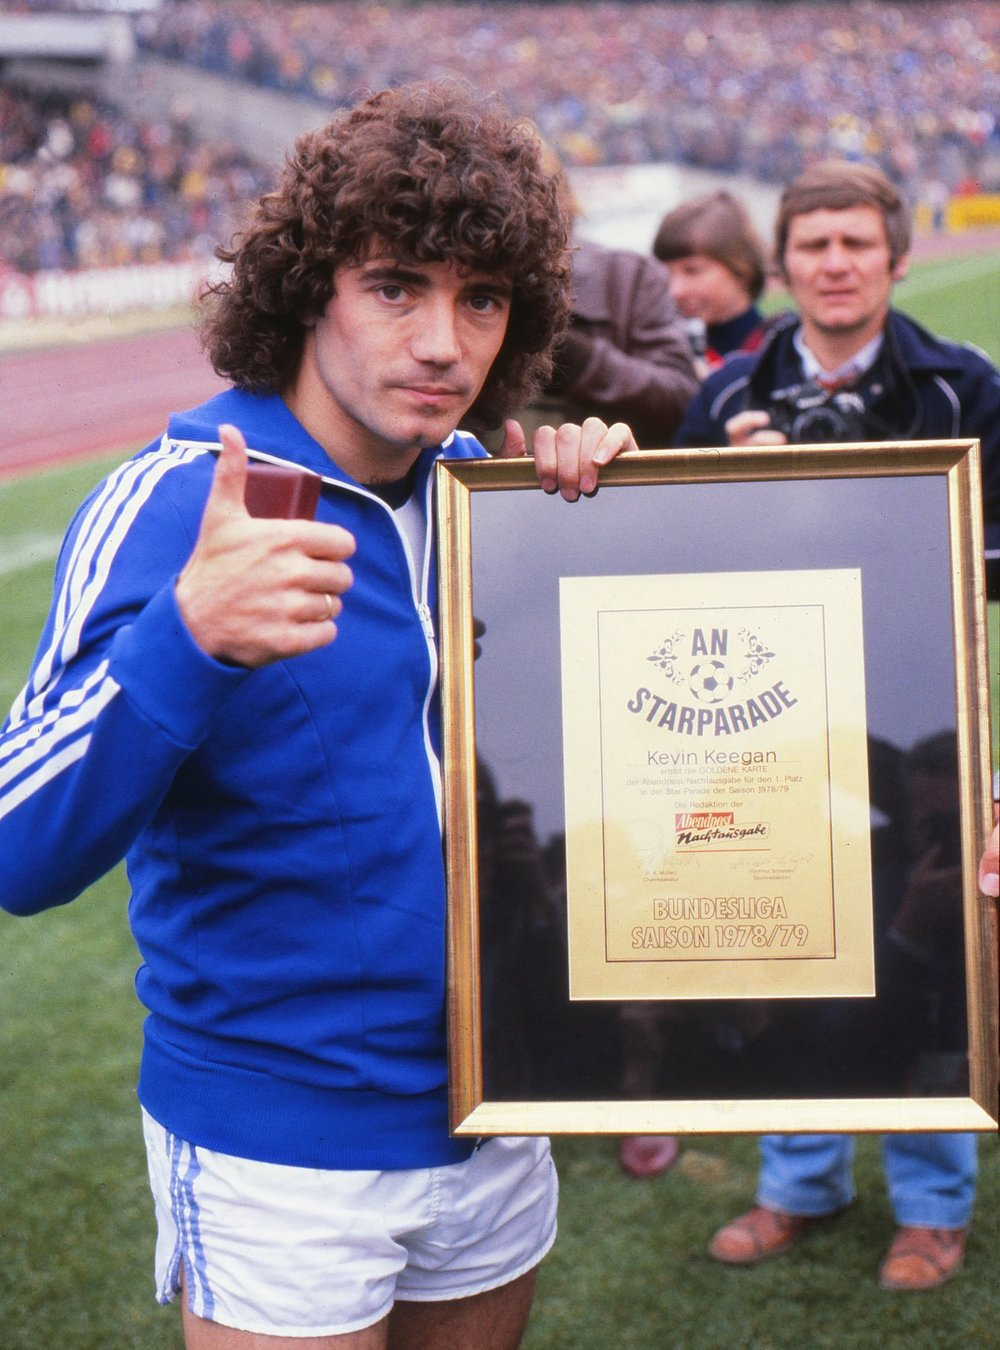 keegan_hamburg_award_1978_7-1.jpg